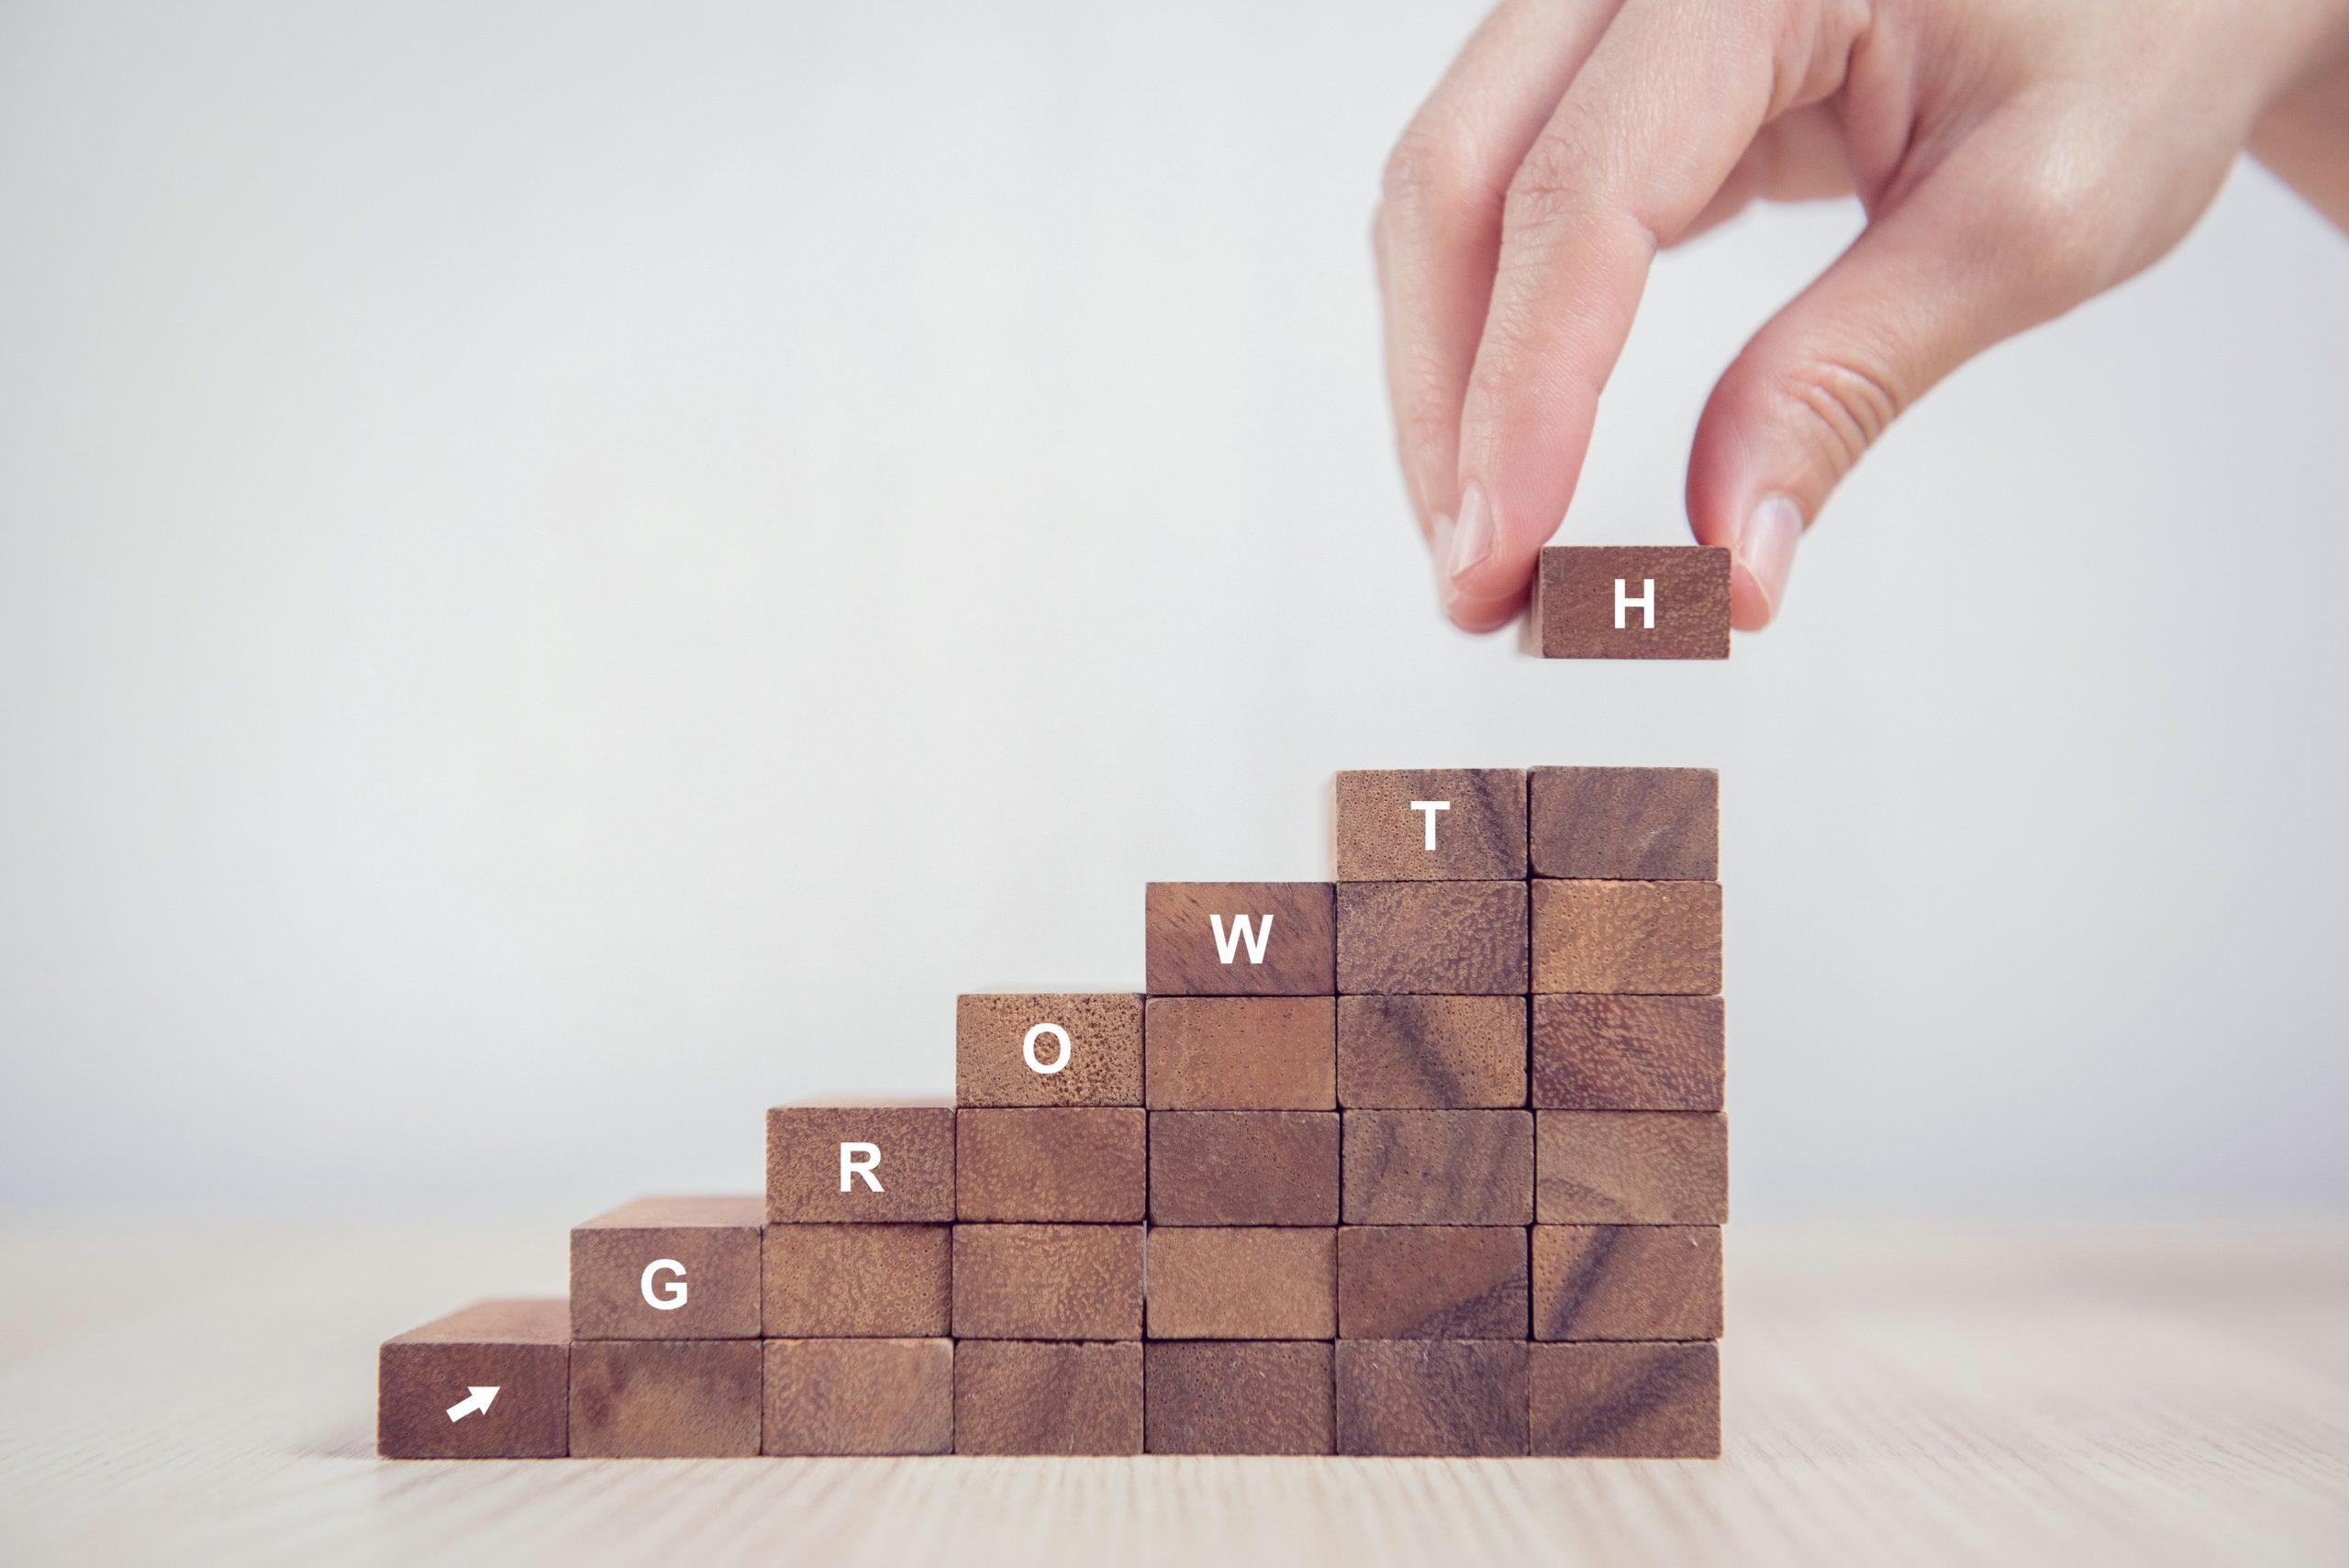 How to scale your sales program. Blocks stacked up spelling out growth.